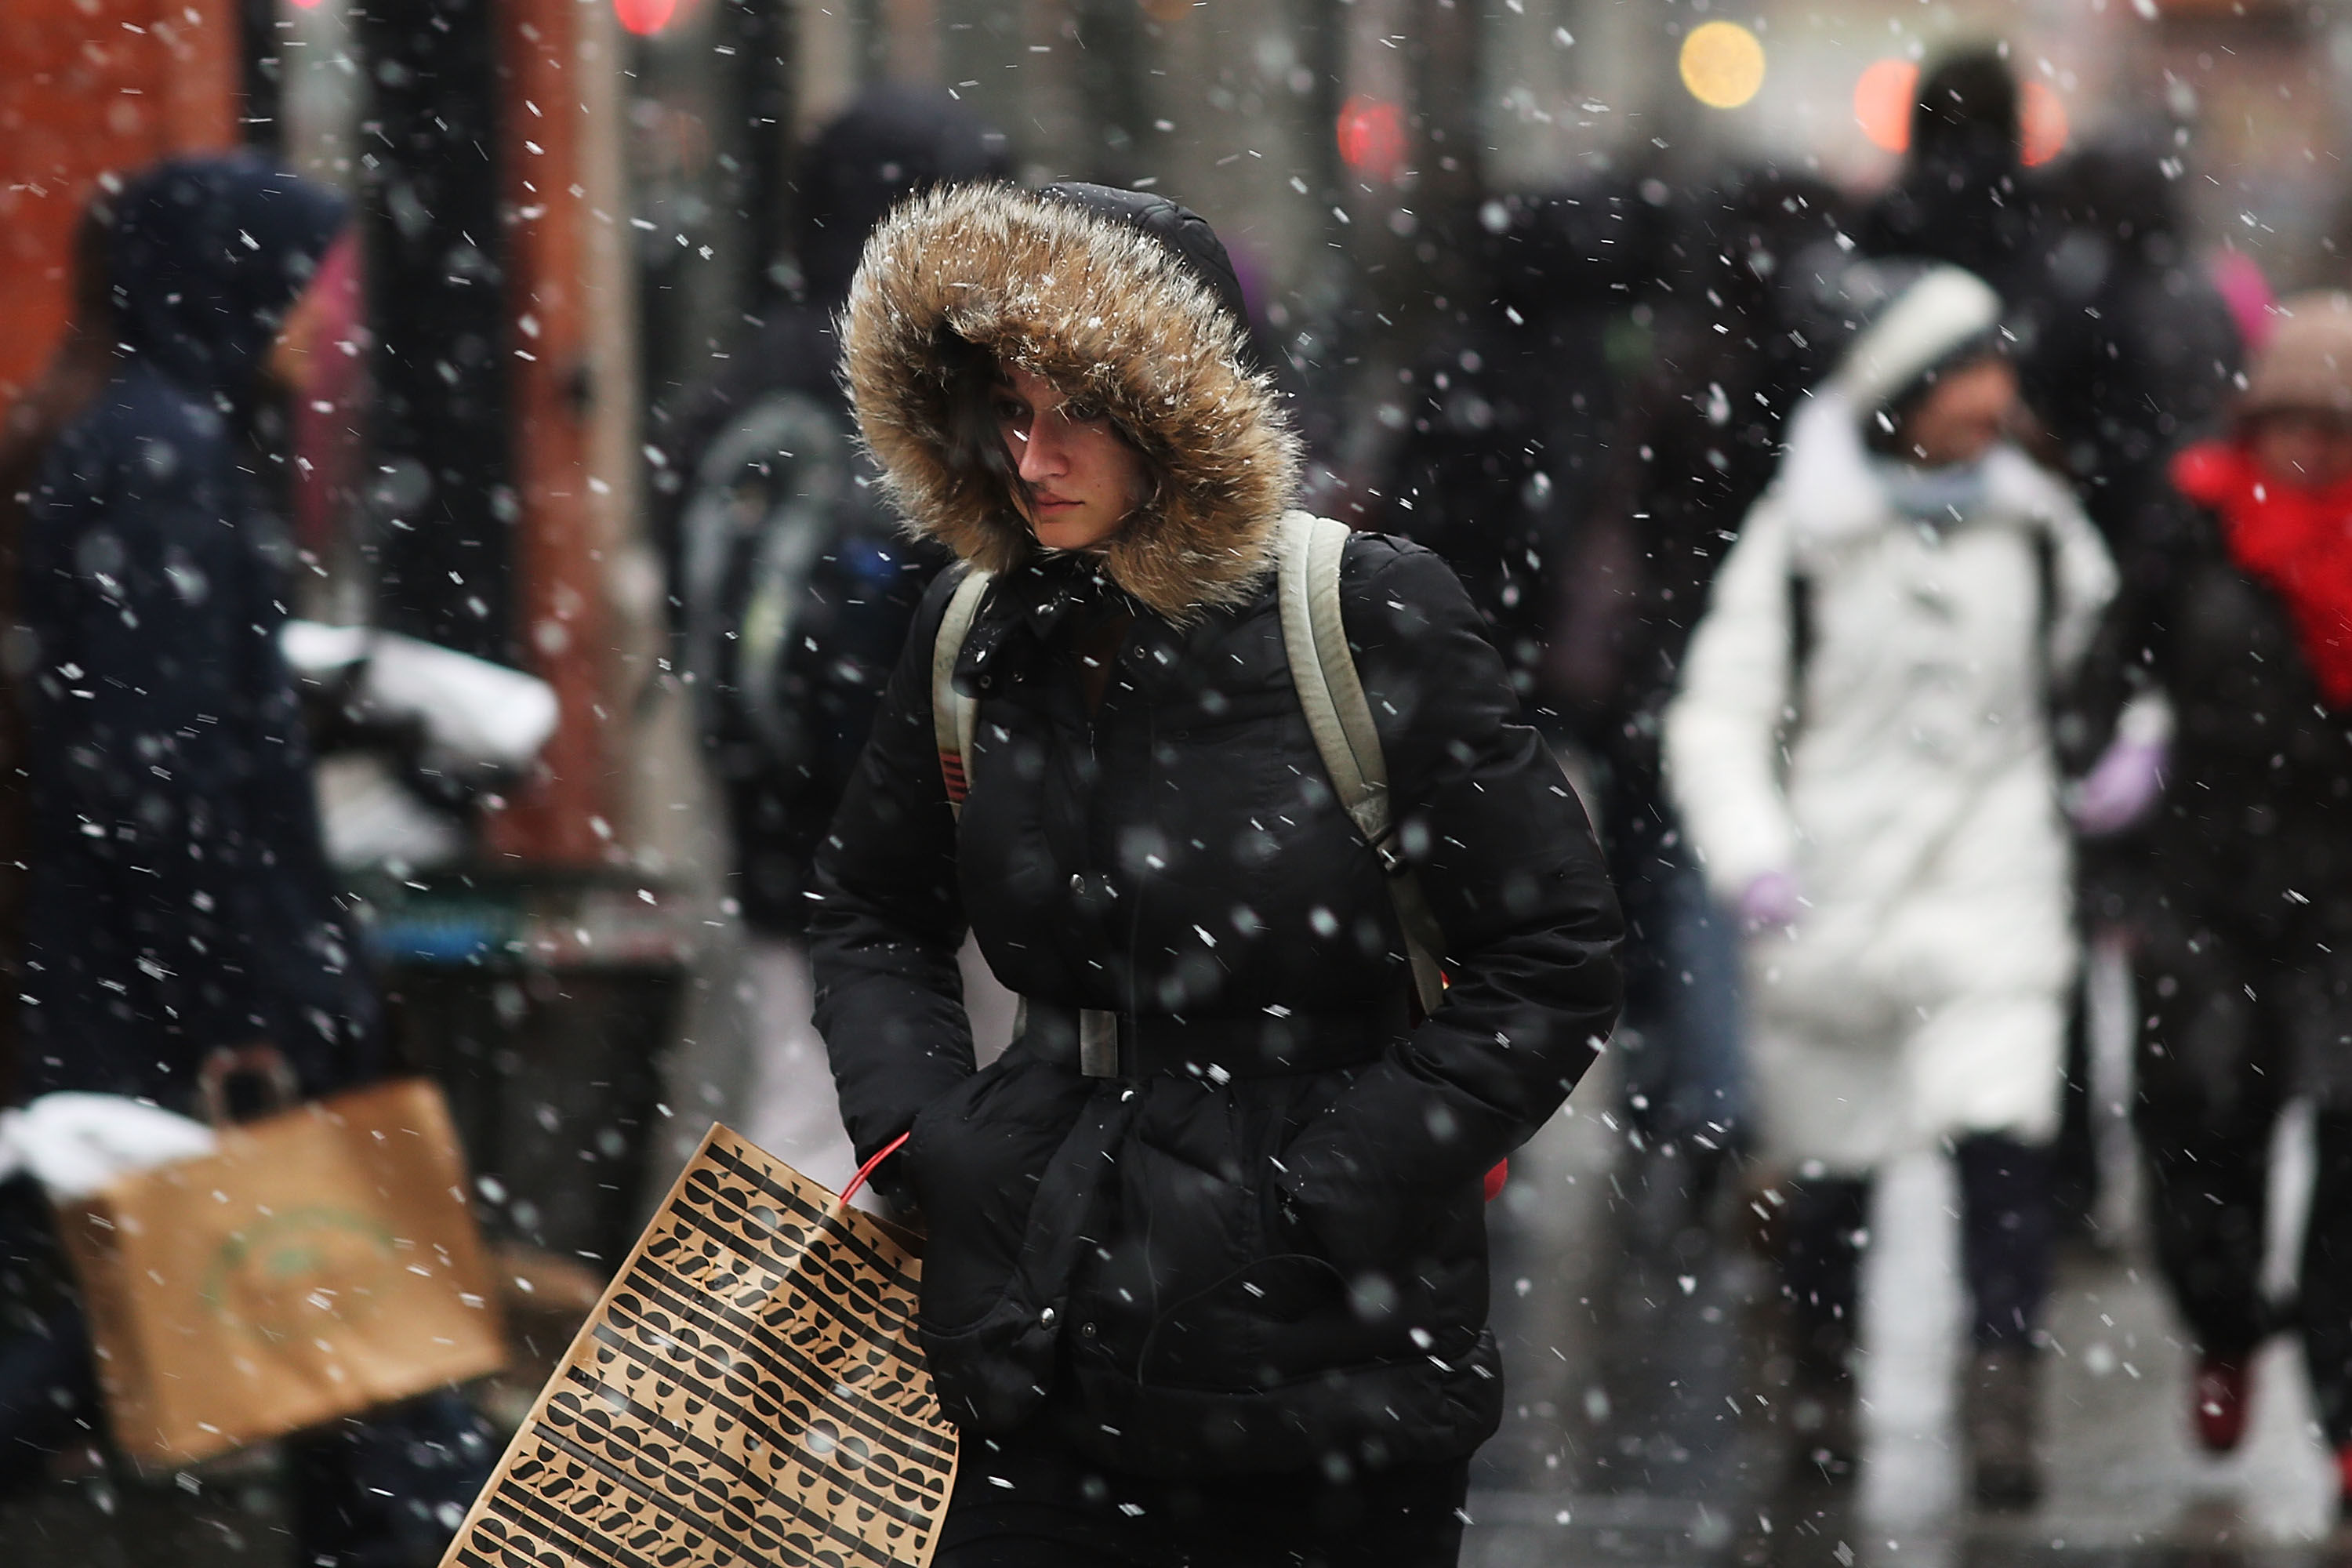 Nasty Winter Weather Could Hit the South This Week